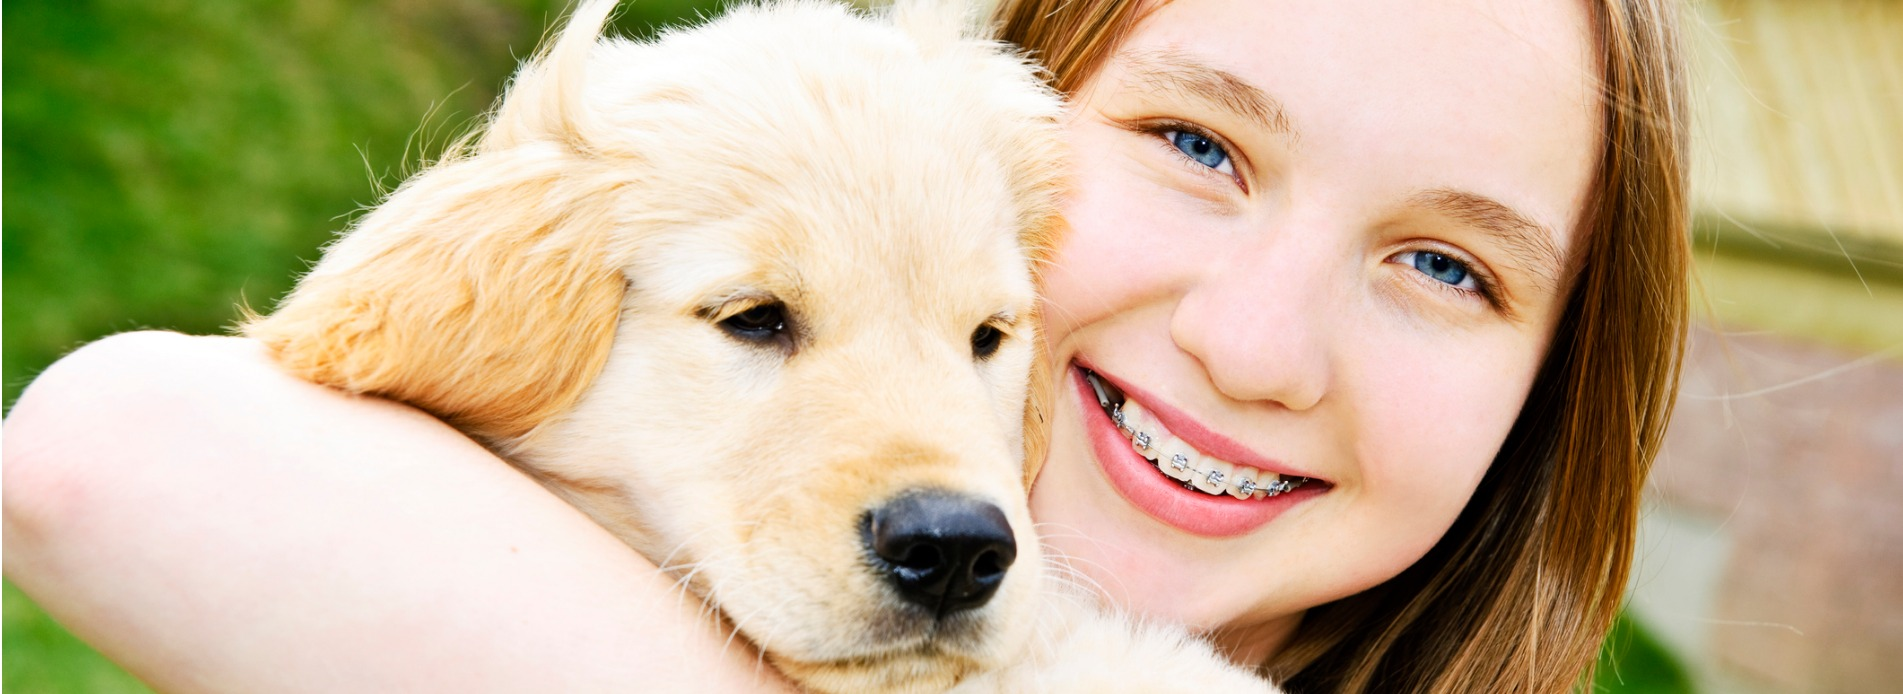 girl smiling holding a puppy dog picture